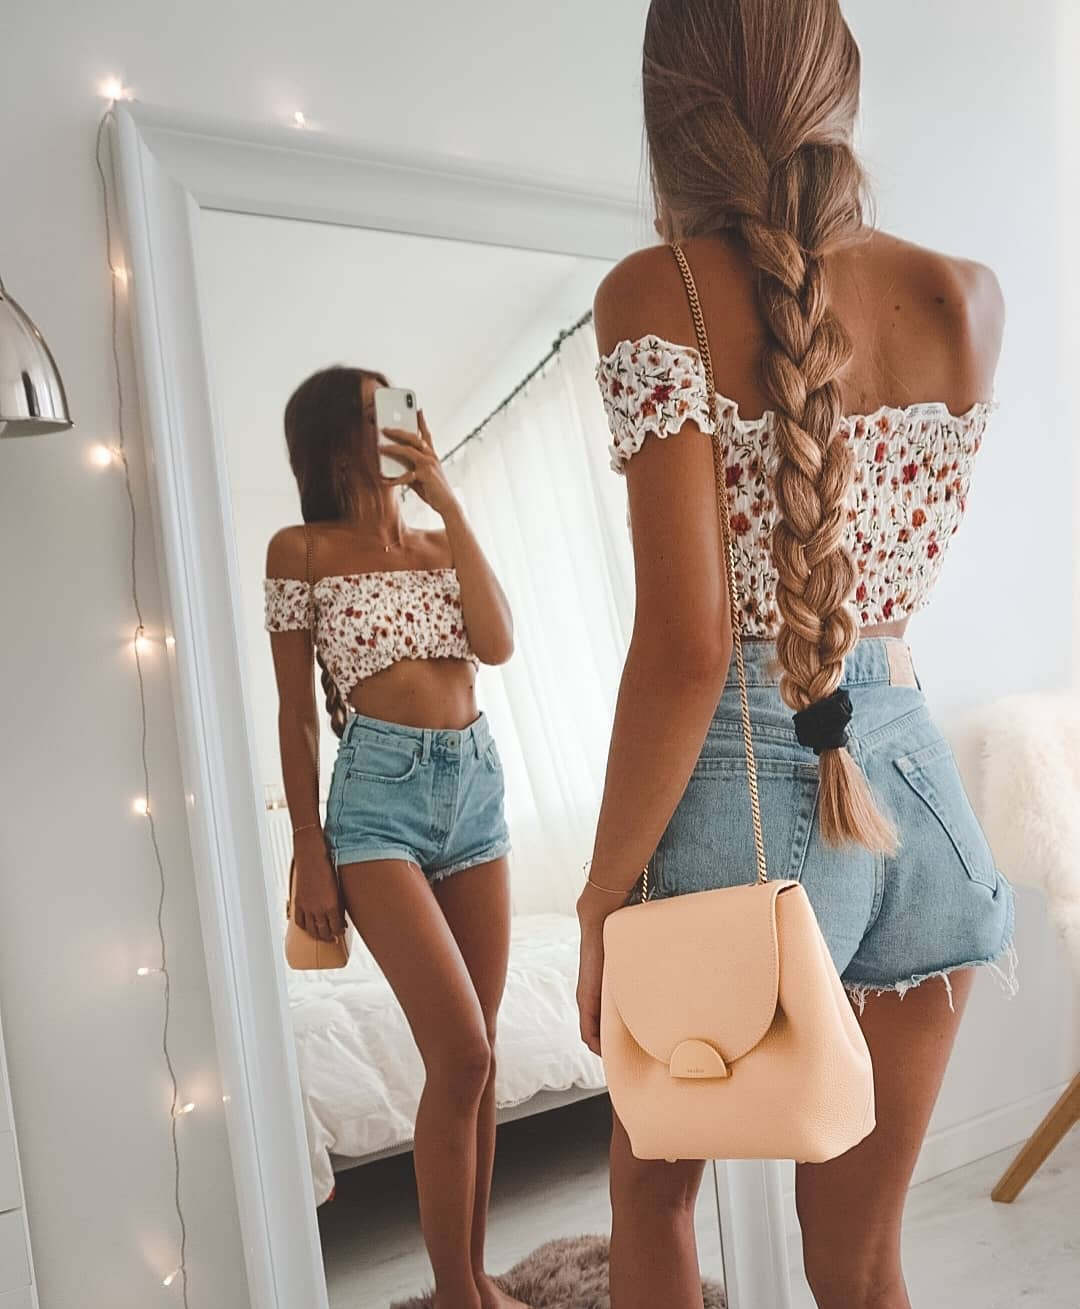 Off Shoulder Crop Top In Floral Print With Blue Denim Shorts For Summer 2019